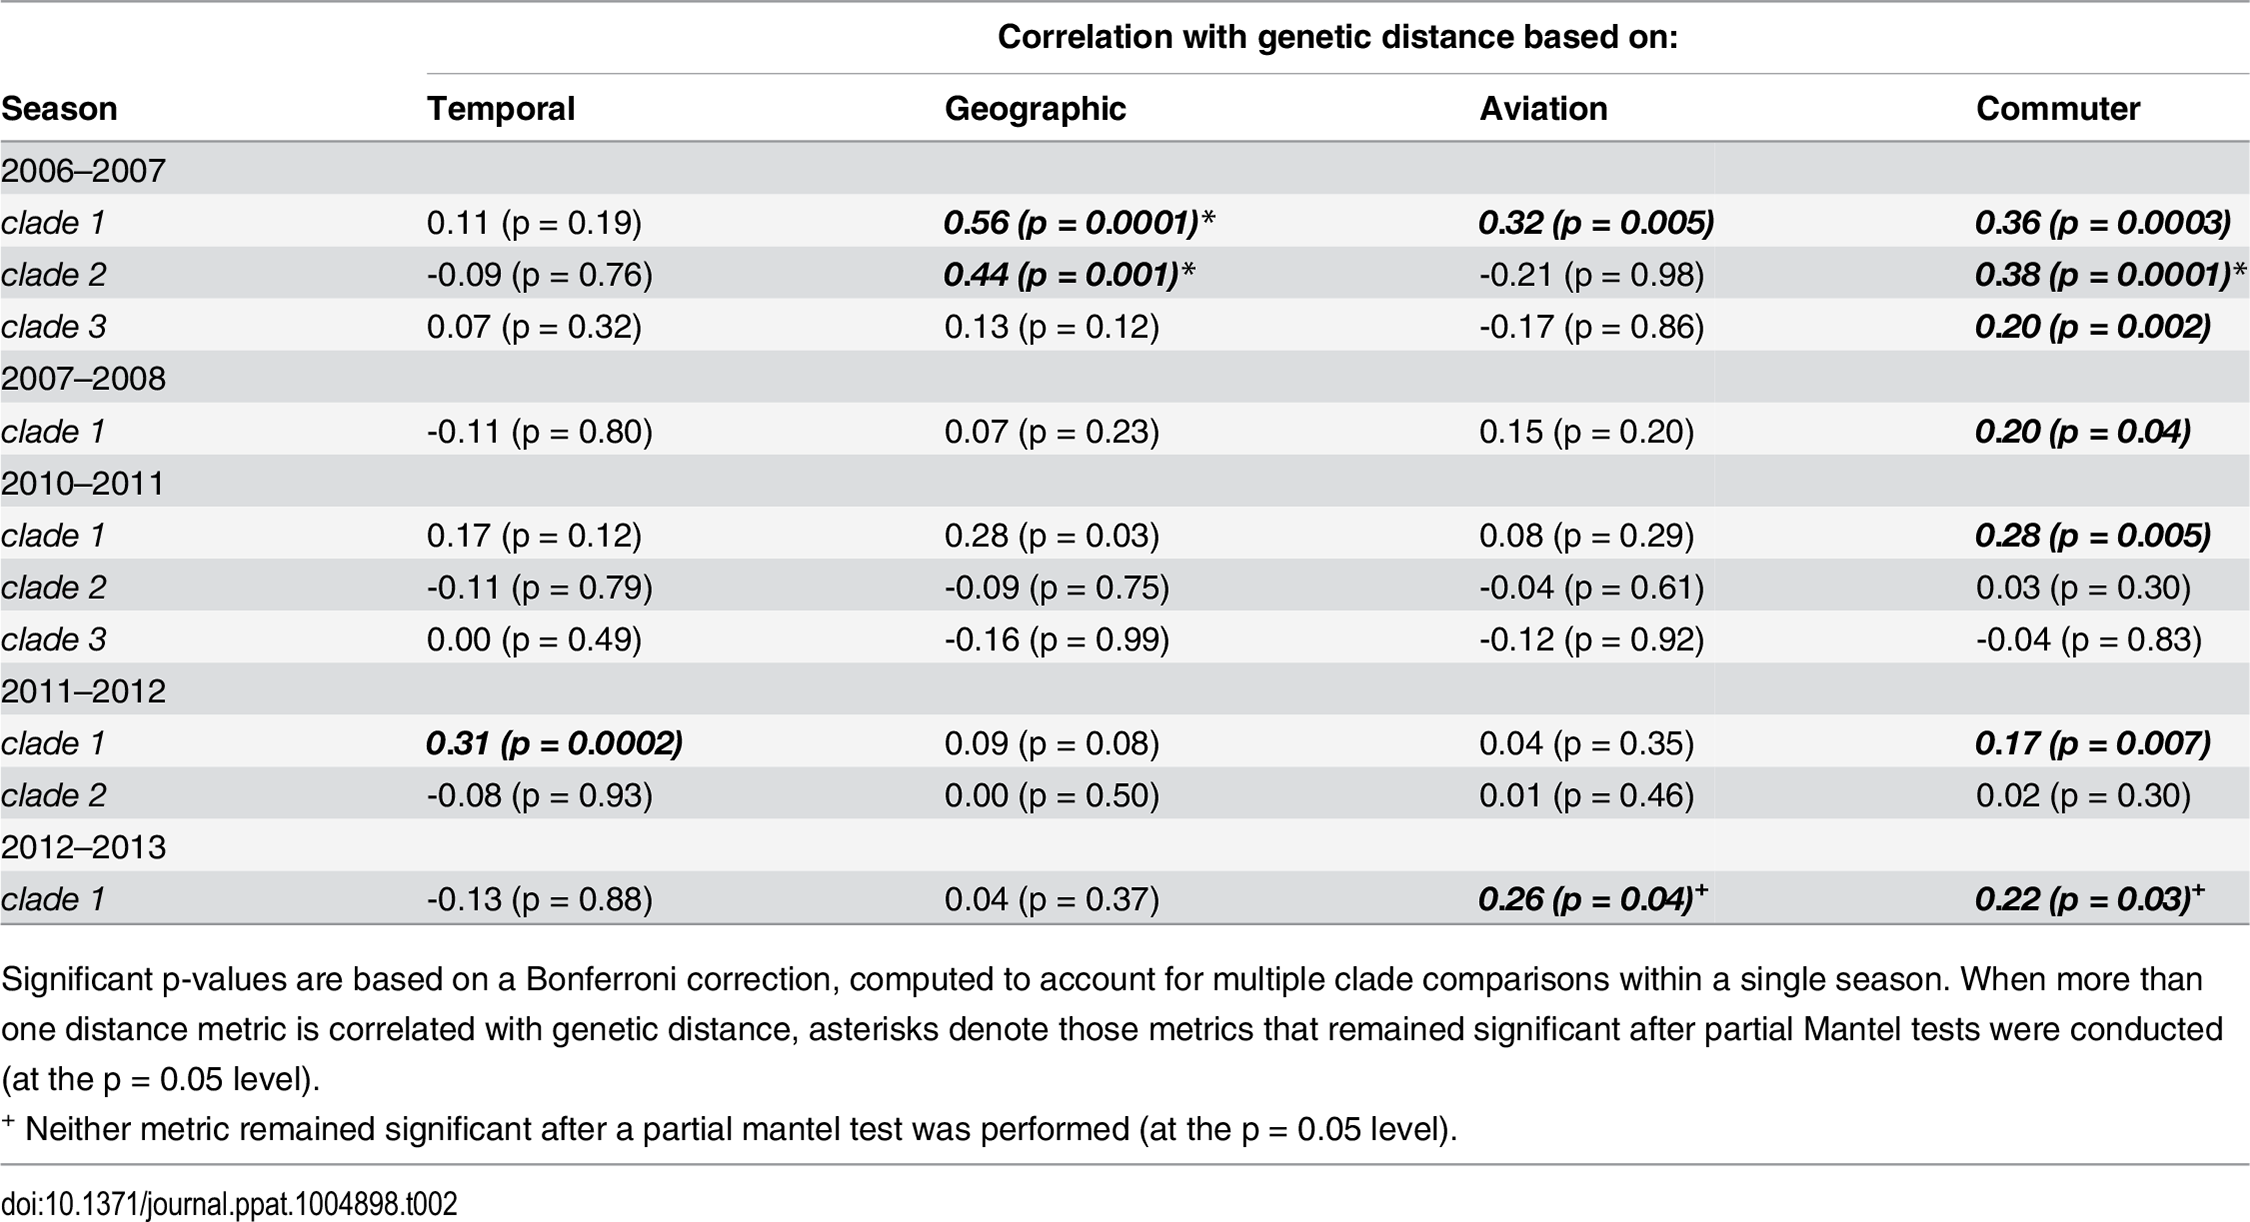 Mantel r correlation coefficients measuring the association between matrices of genetic, temporal, geographic, aviation network and commuter network distance for H1N1 sequences.